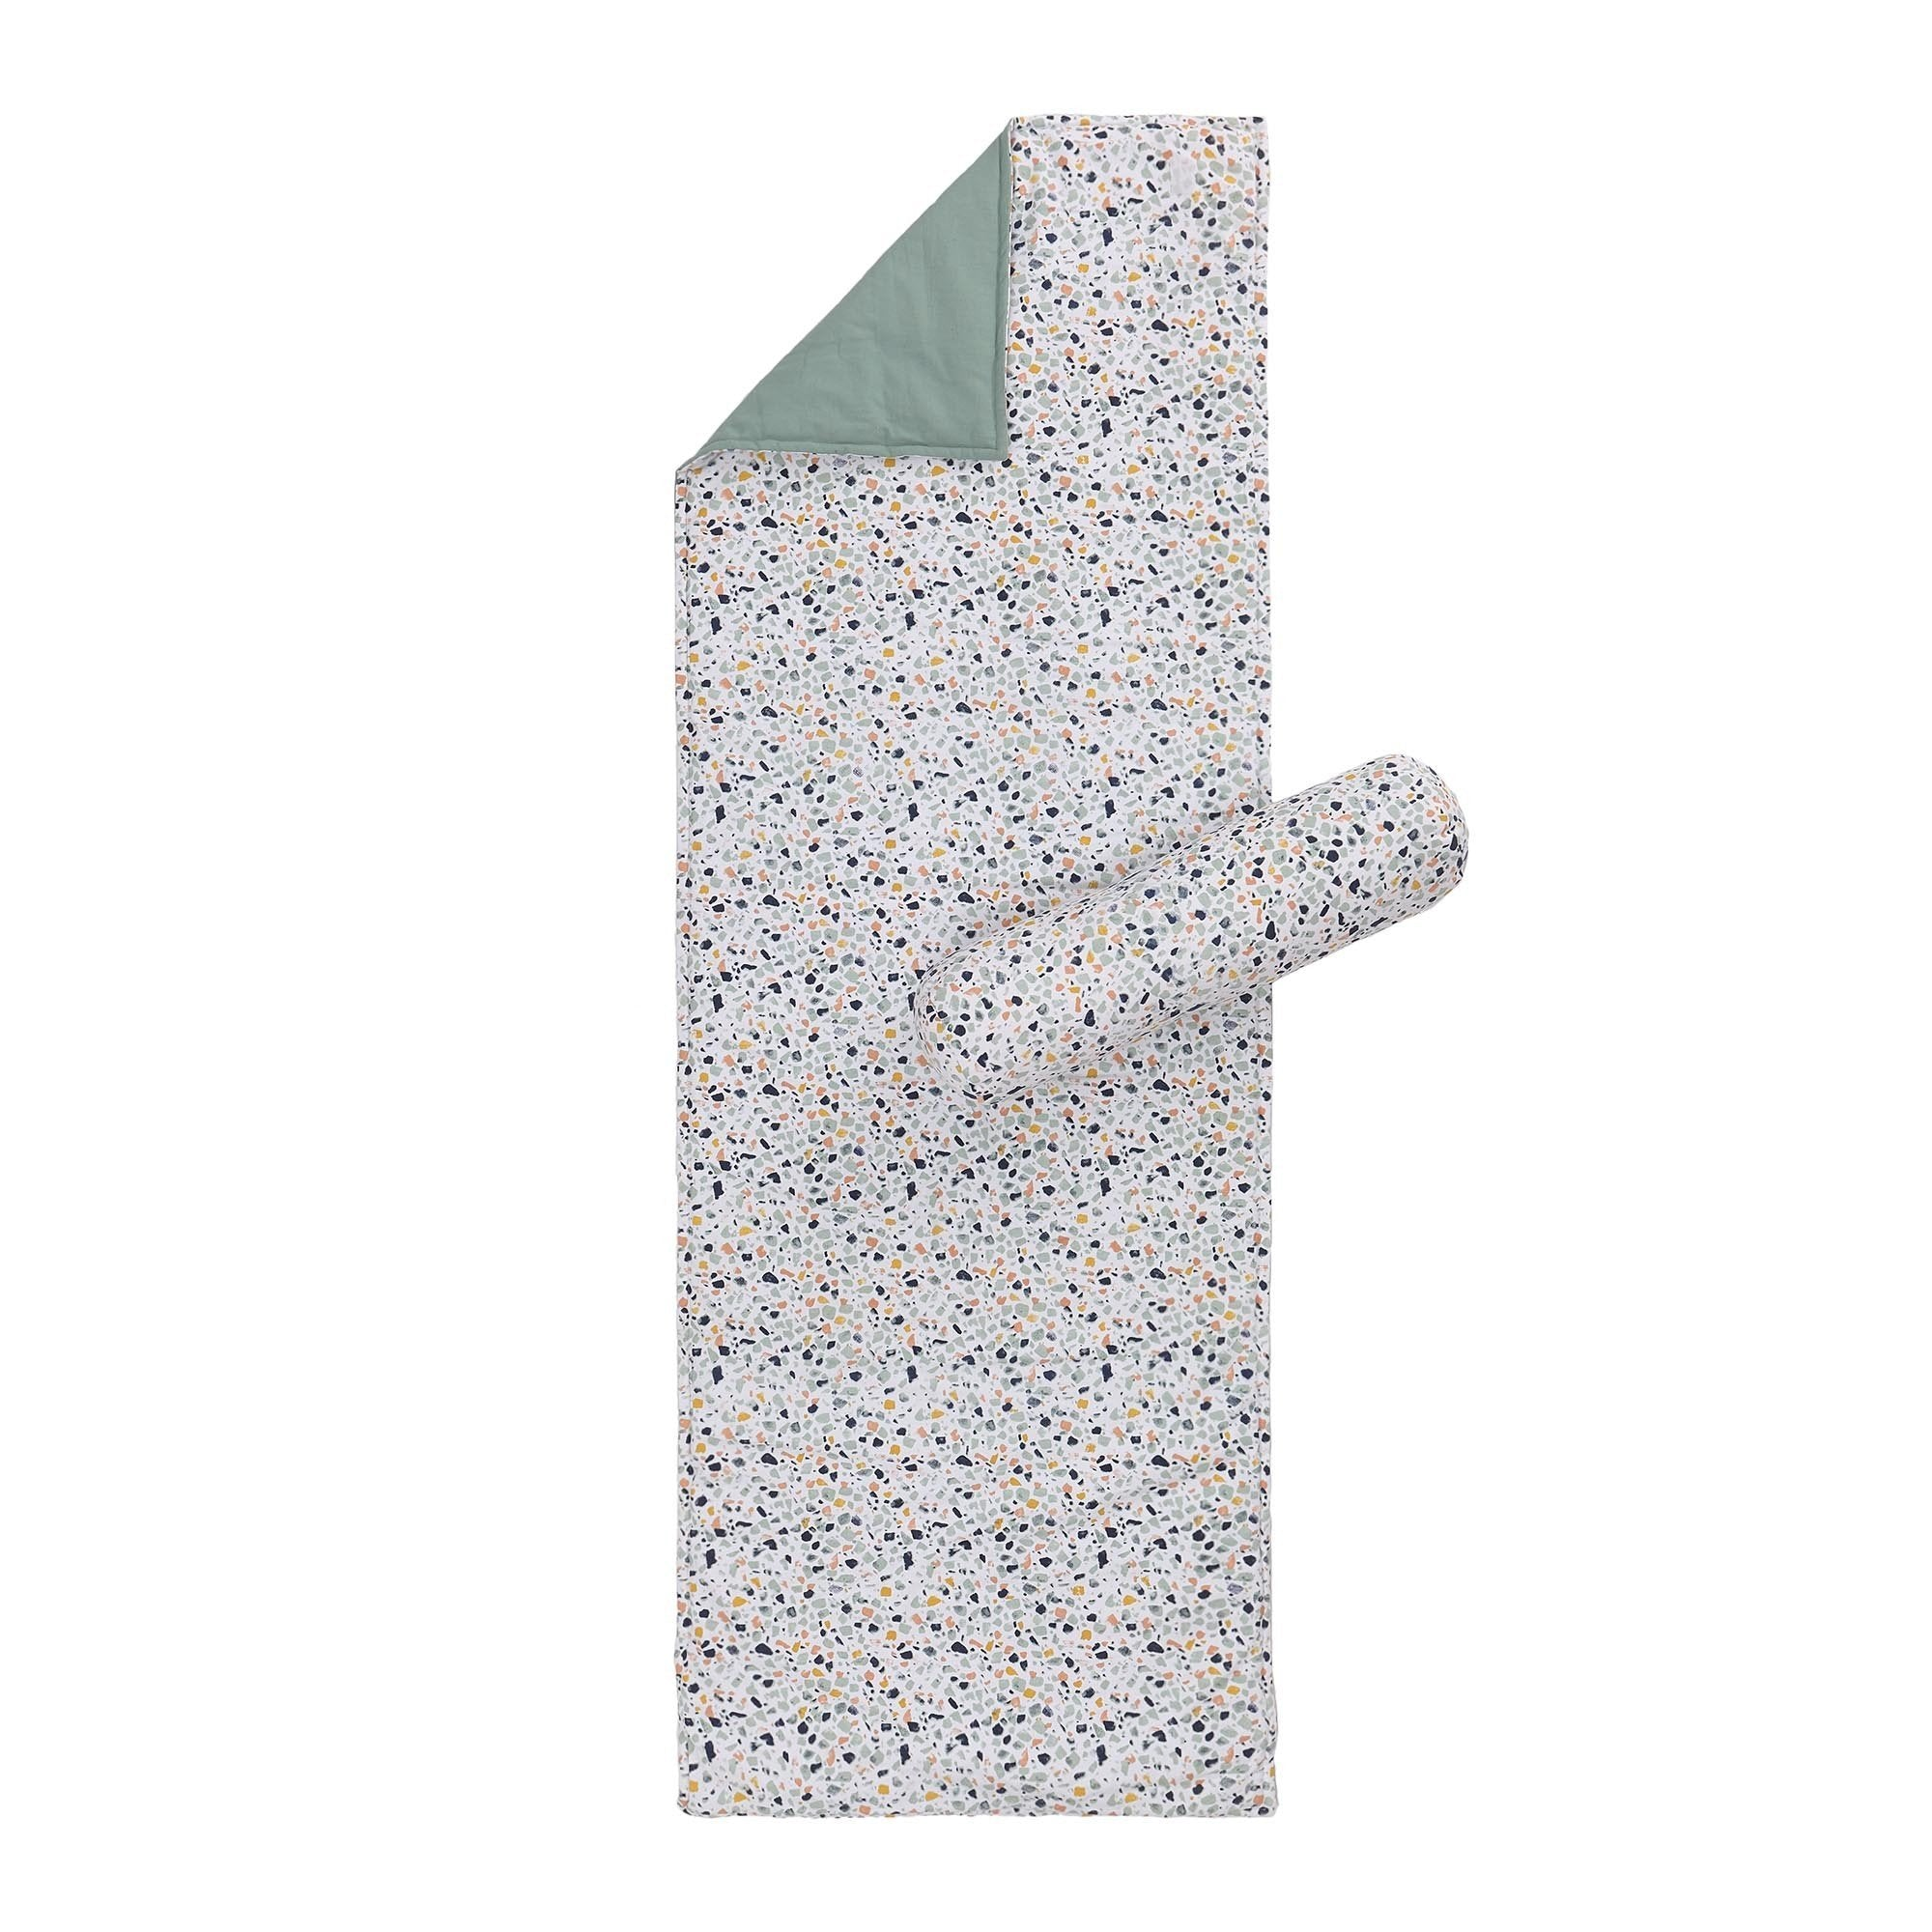 Visso beach mat, bright mustard & light pink & light ocean green & light grey green, 100% cotton & 100% polyester